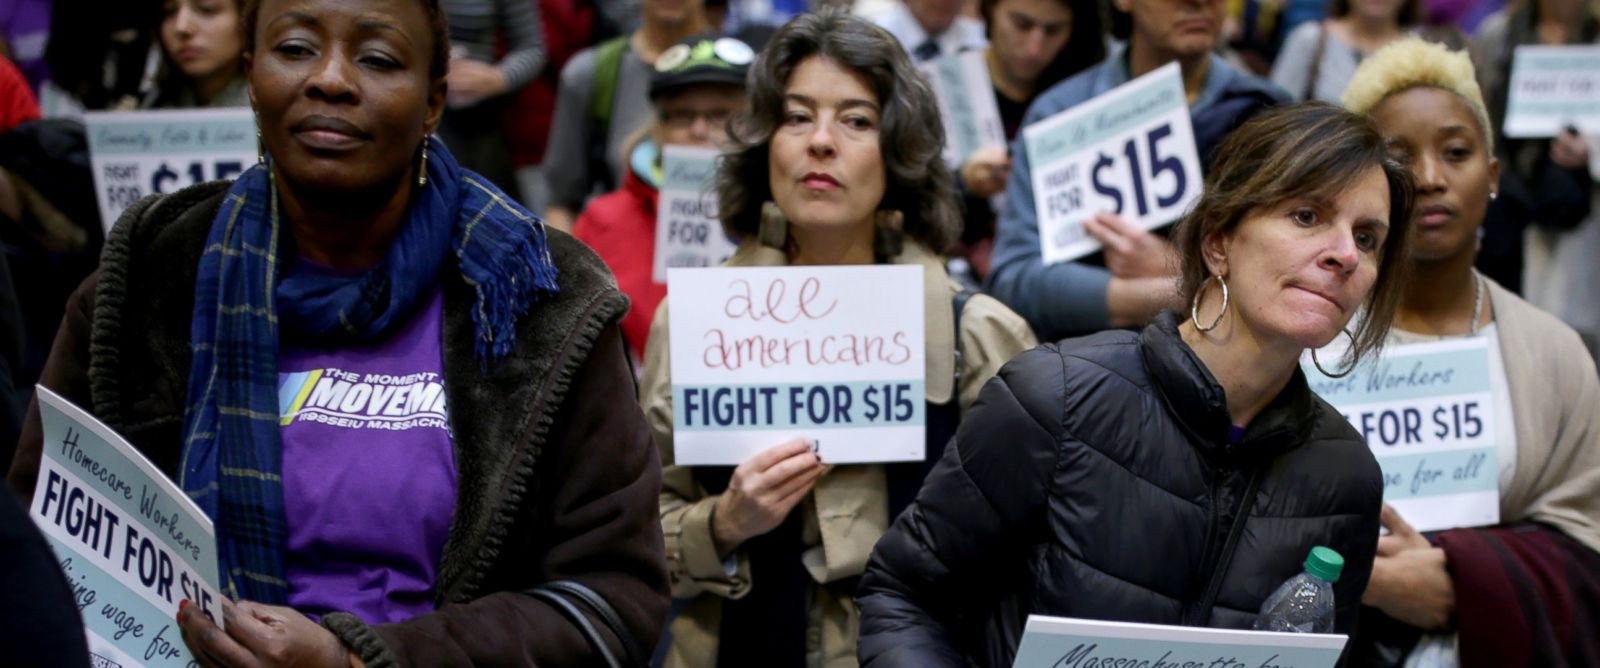 PHOTO: Hilda Haye, left and Lisa Murphy, right, who are from Cape Cod, take part in a National Day of Action 15 dollar per hour minimum wage protest at the Massachusetts State House in Boston, Nov. 29, 2016.